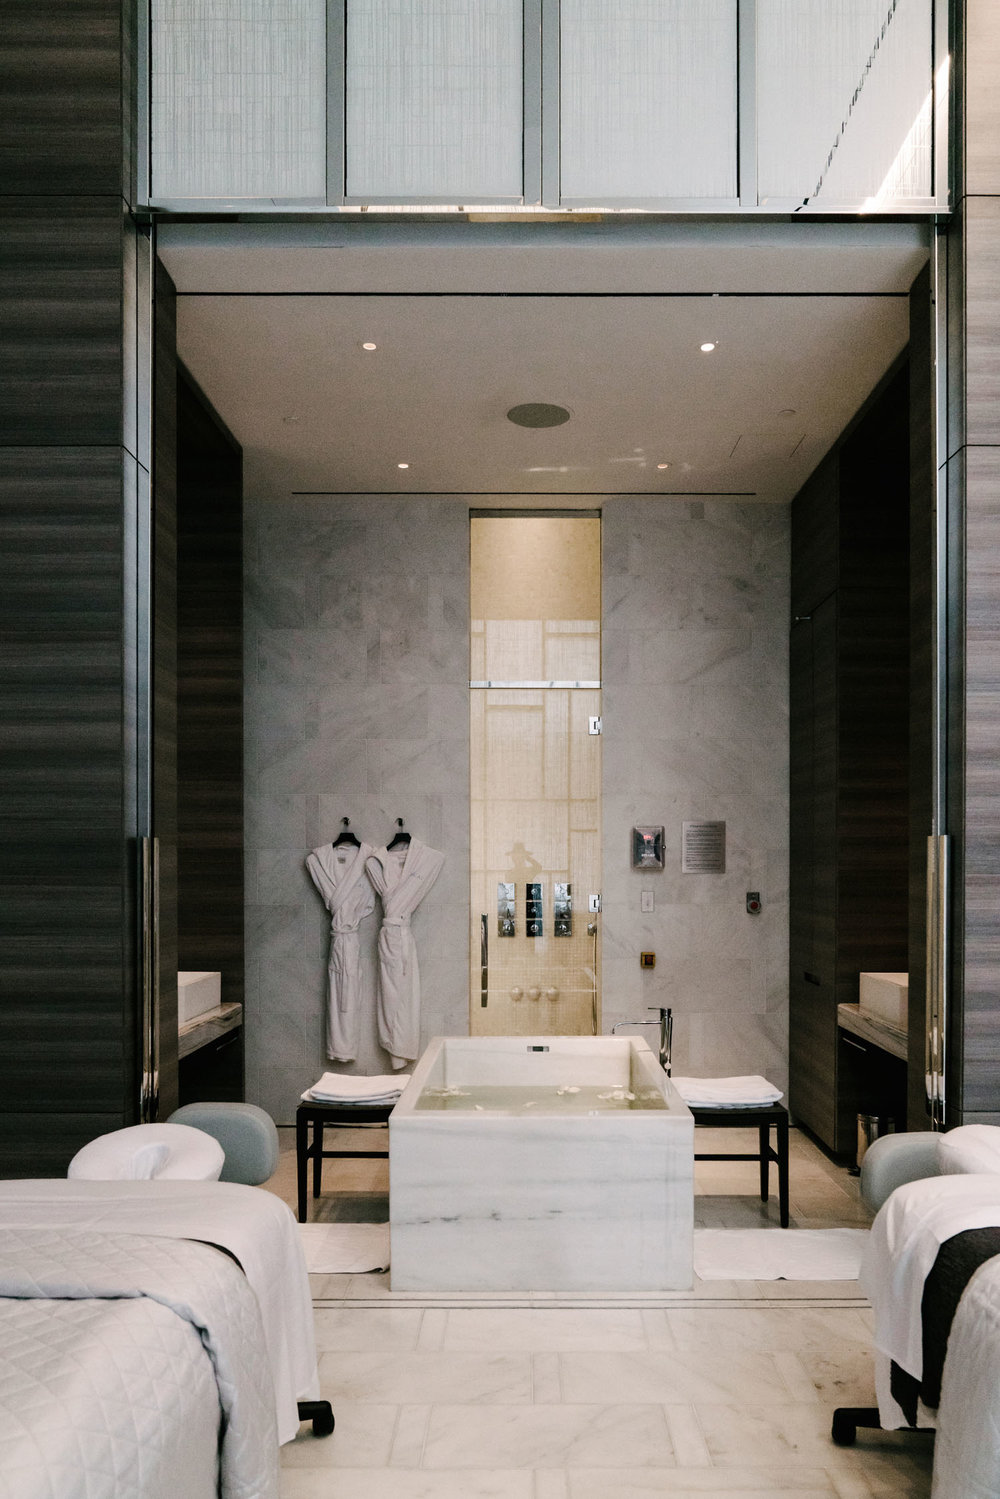 time to take a breather - Places to relax and treat yourself – be it a facial, a spa visit, an indulgent mani/pedi, or new hair!Shown here:Spa Nalai at Park Hyatt New York